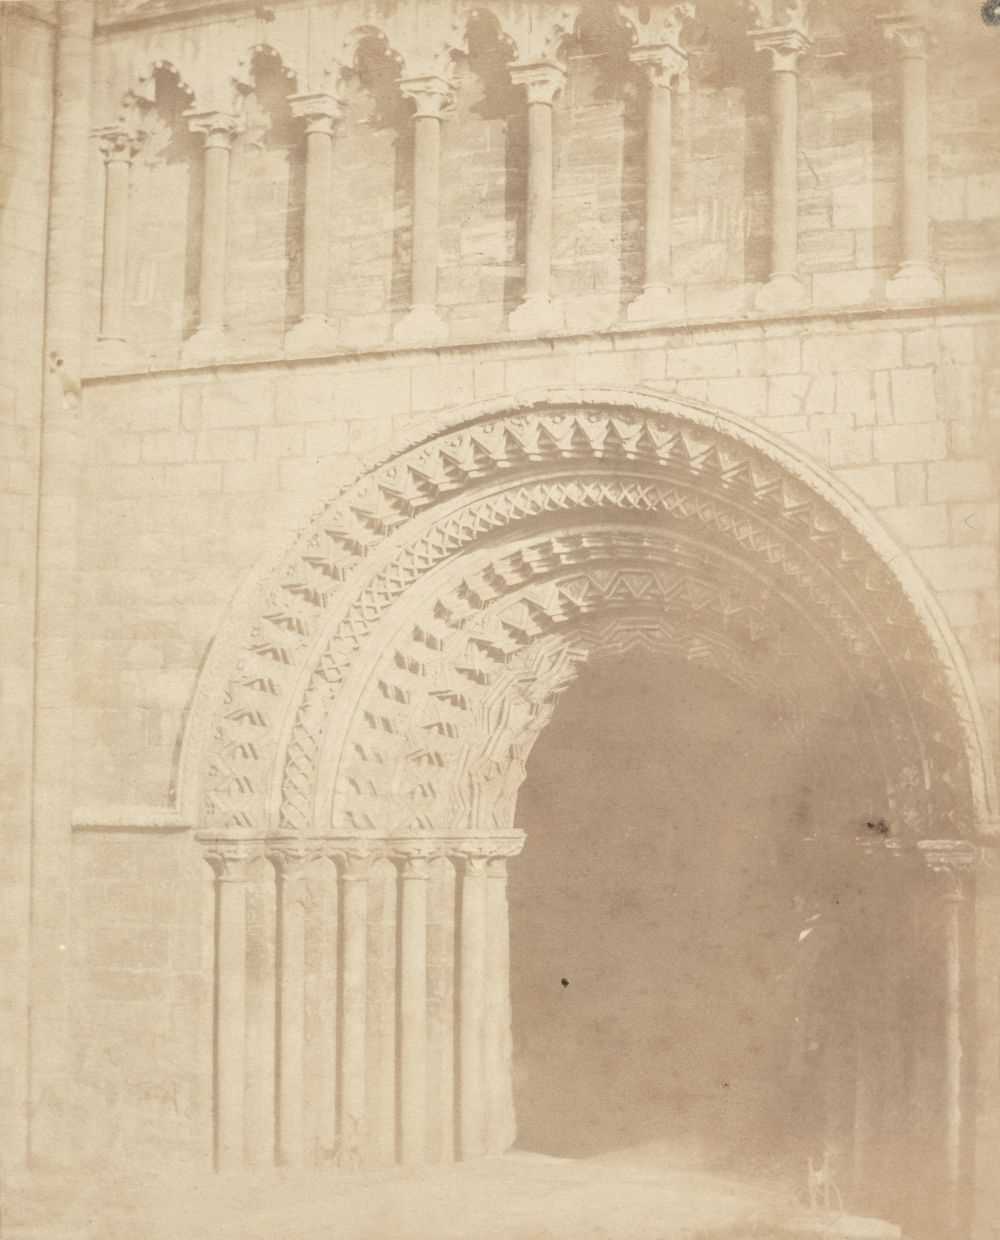 Lot 2-British School. A Norman church archway, c. 1840s, salted paper print on contemporary paper mount